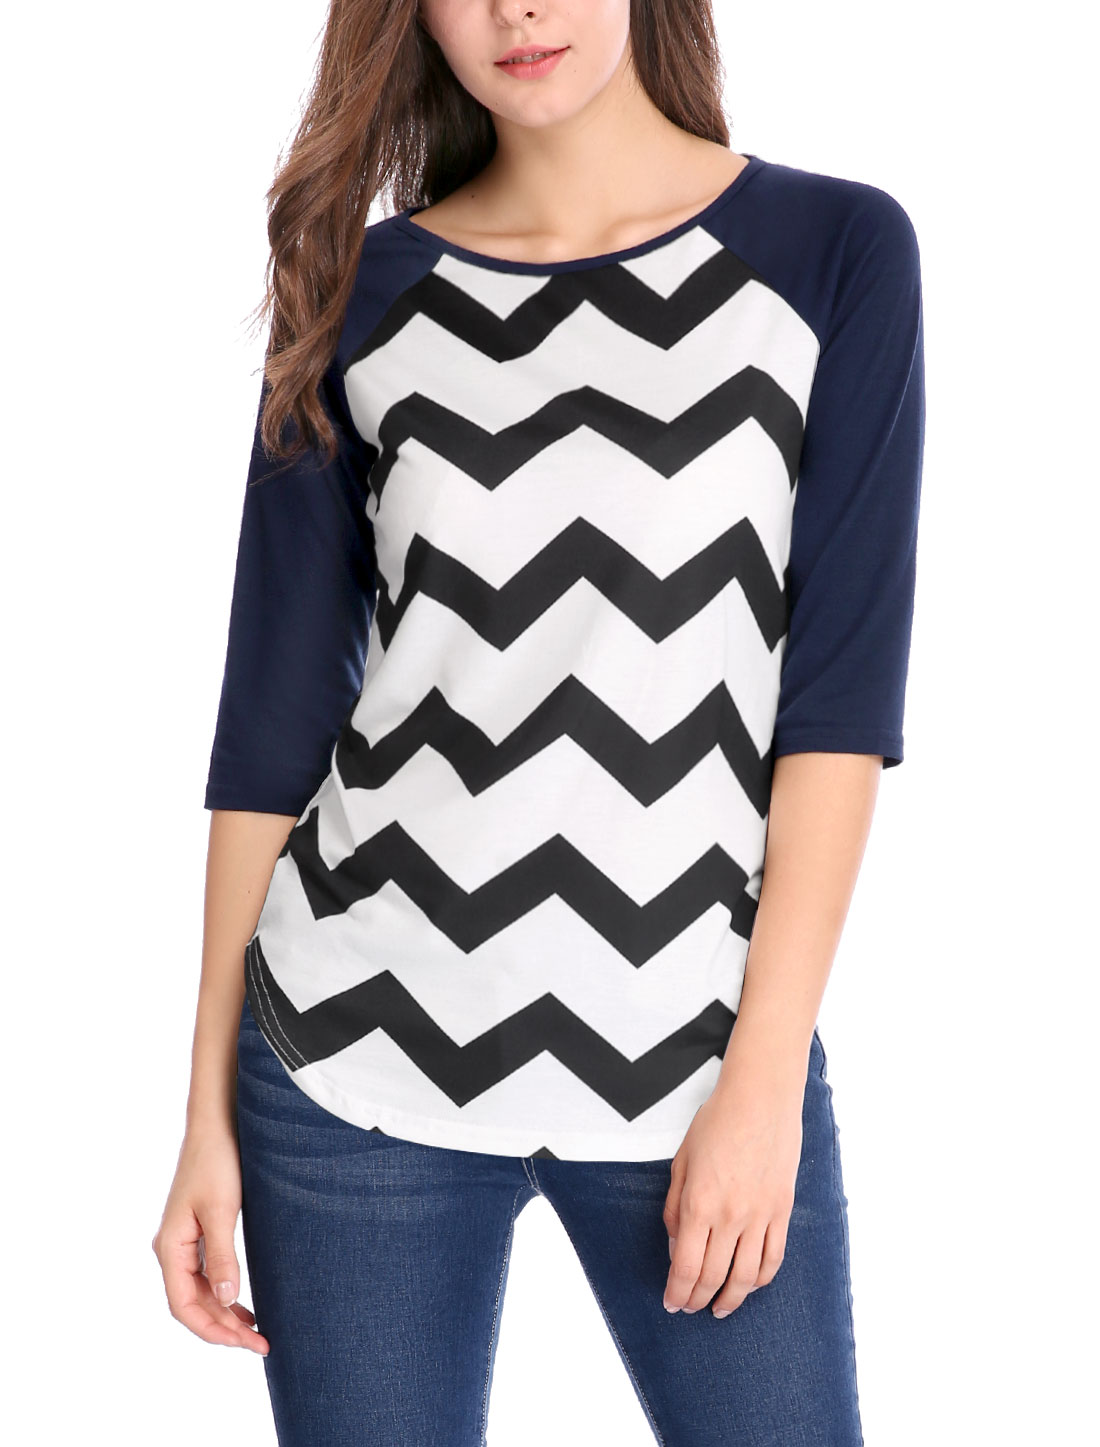 Women Chevron Contrast Color 3/4 Raglan Sleeves Top White S